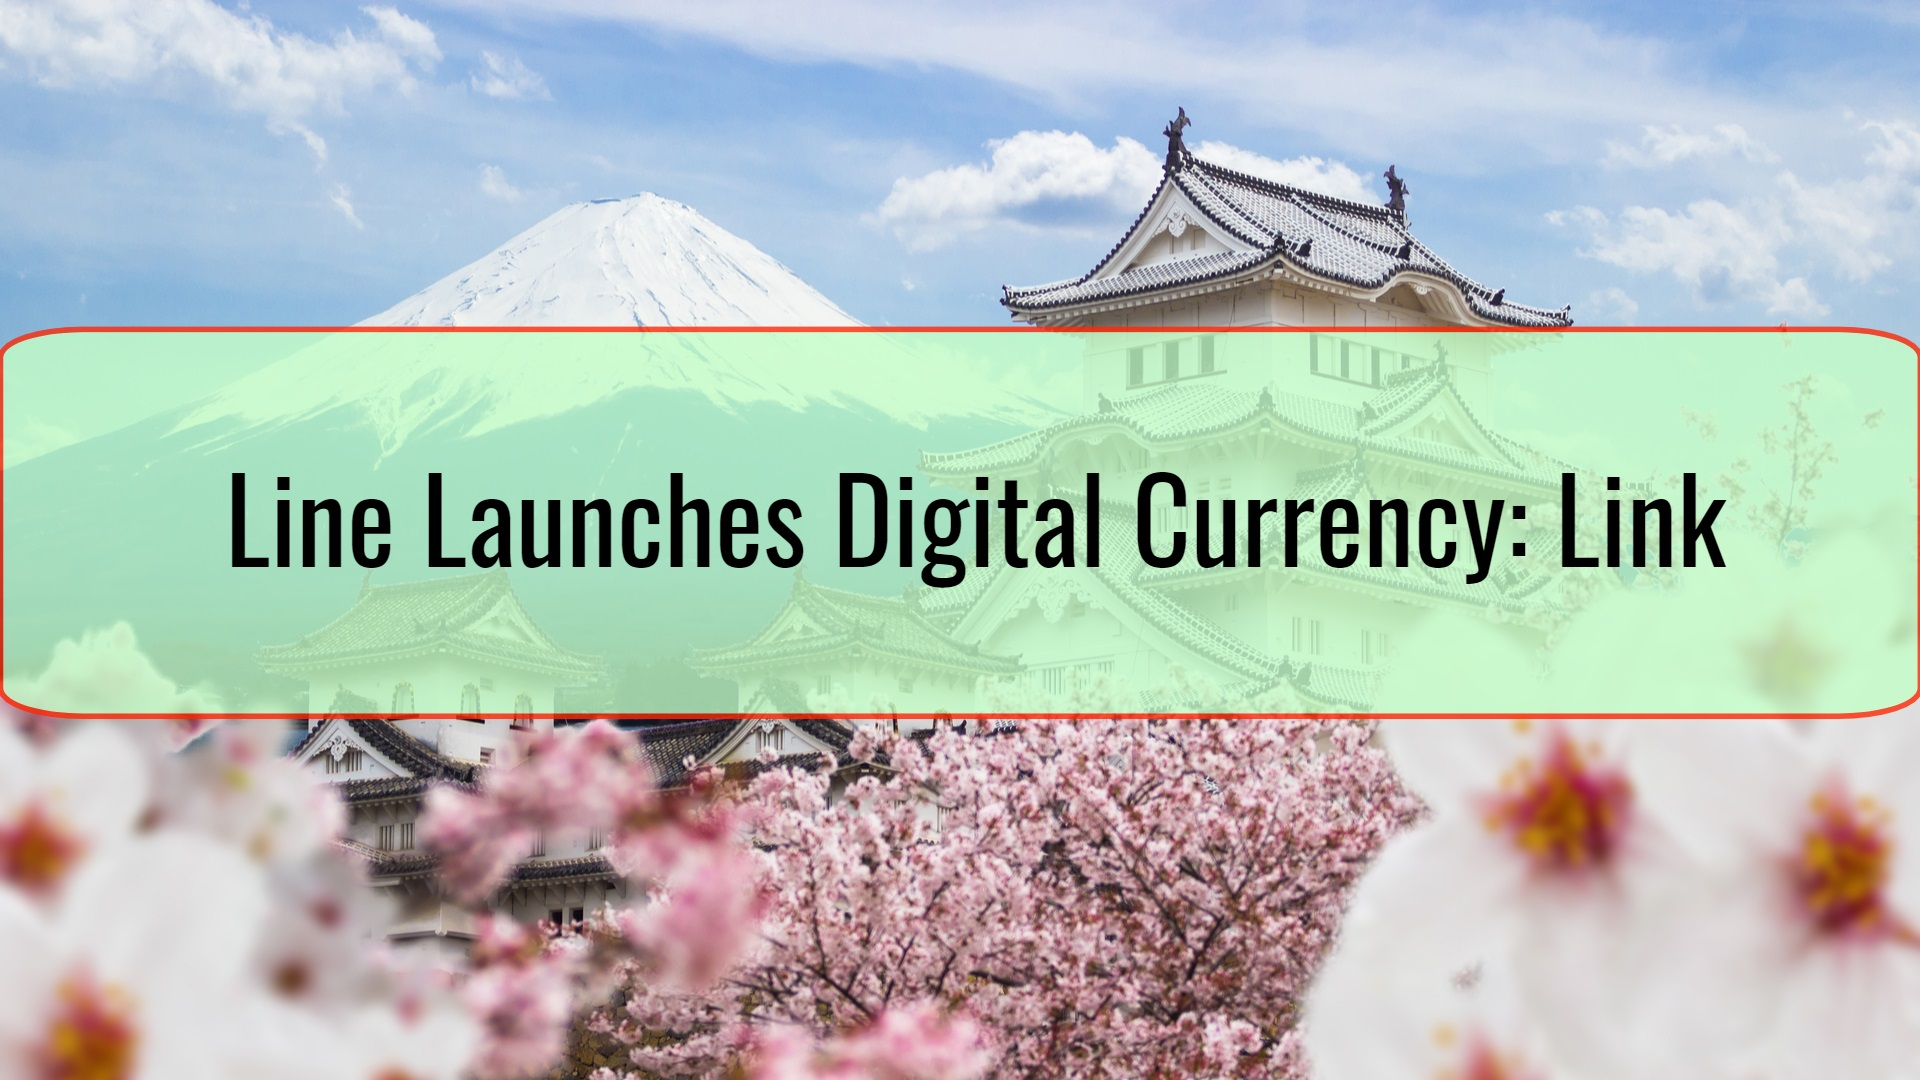 Line Launches Digital Currency Link